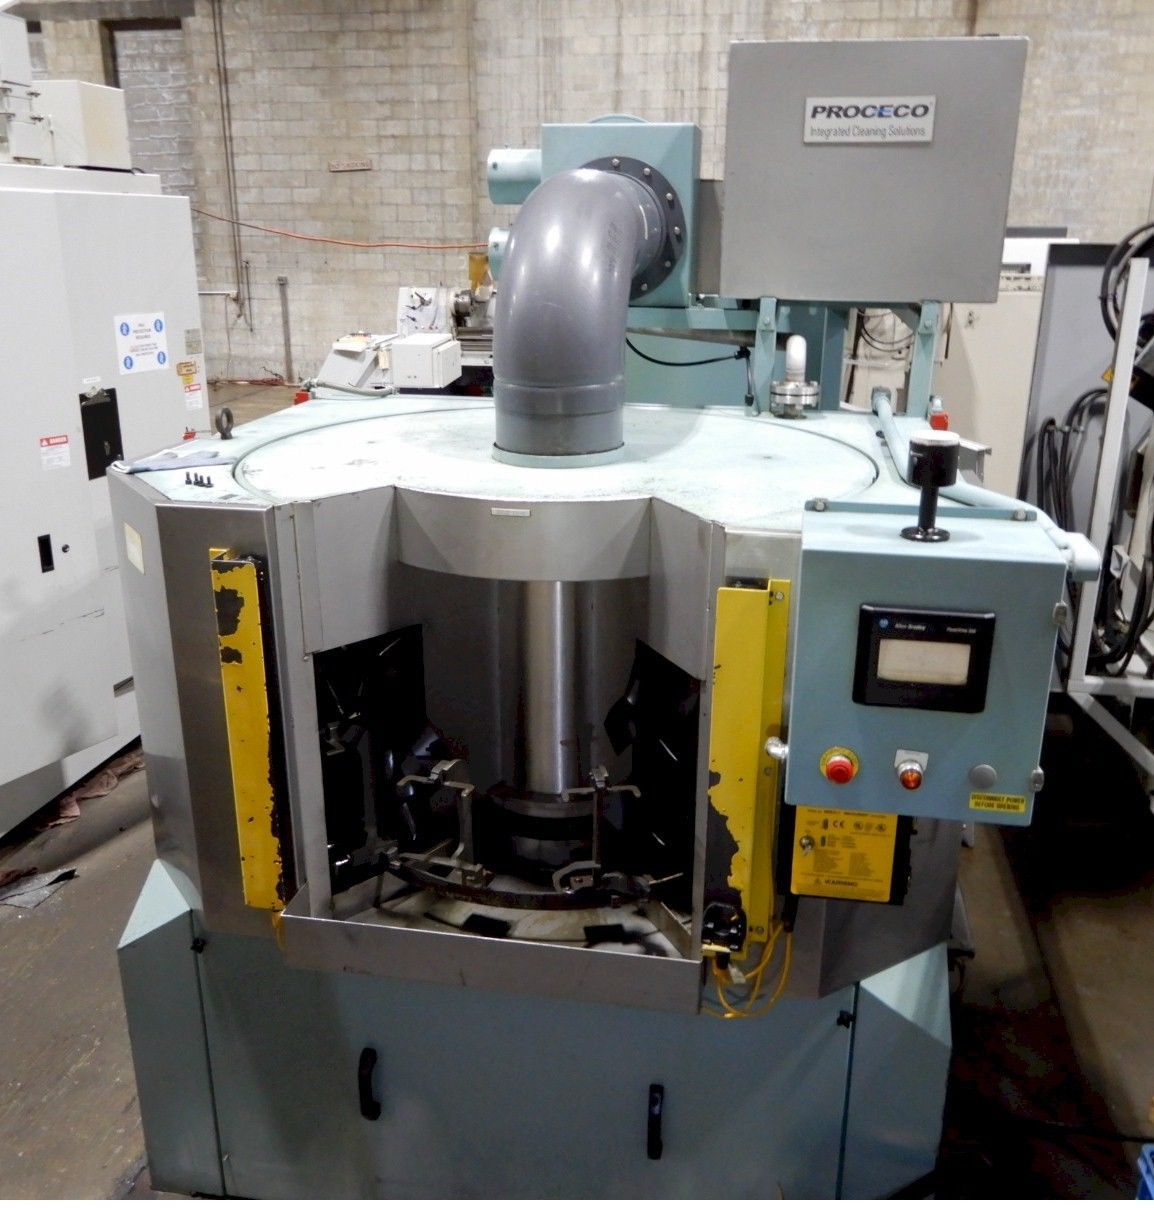 "PROCECO TYPHOON ROTARY PARTS WASHER, Model R-48-E-SS, 2 Stage, 10""x18"" Max Part Capacity."